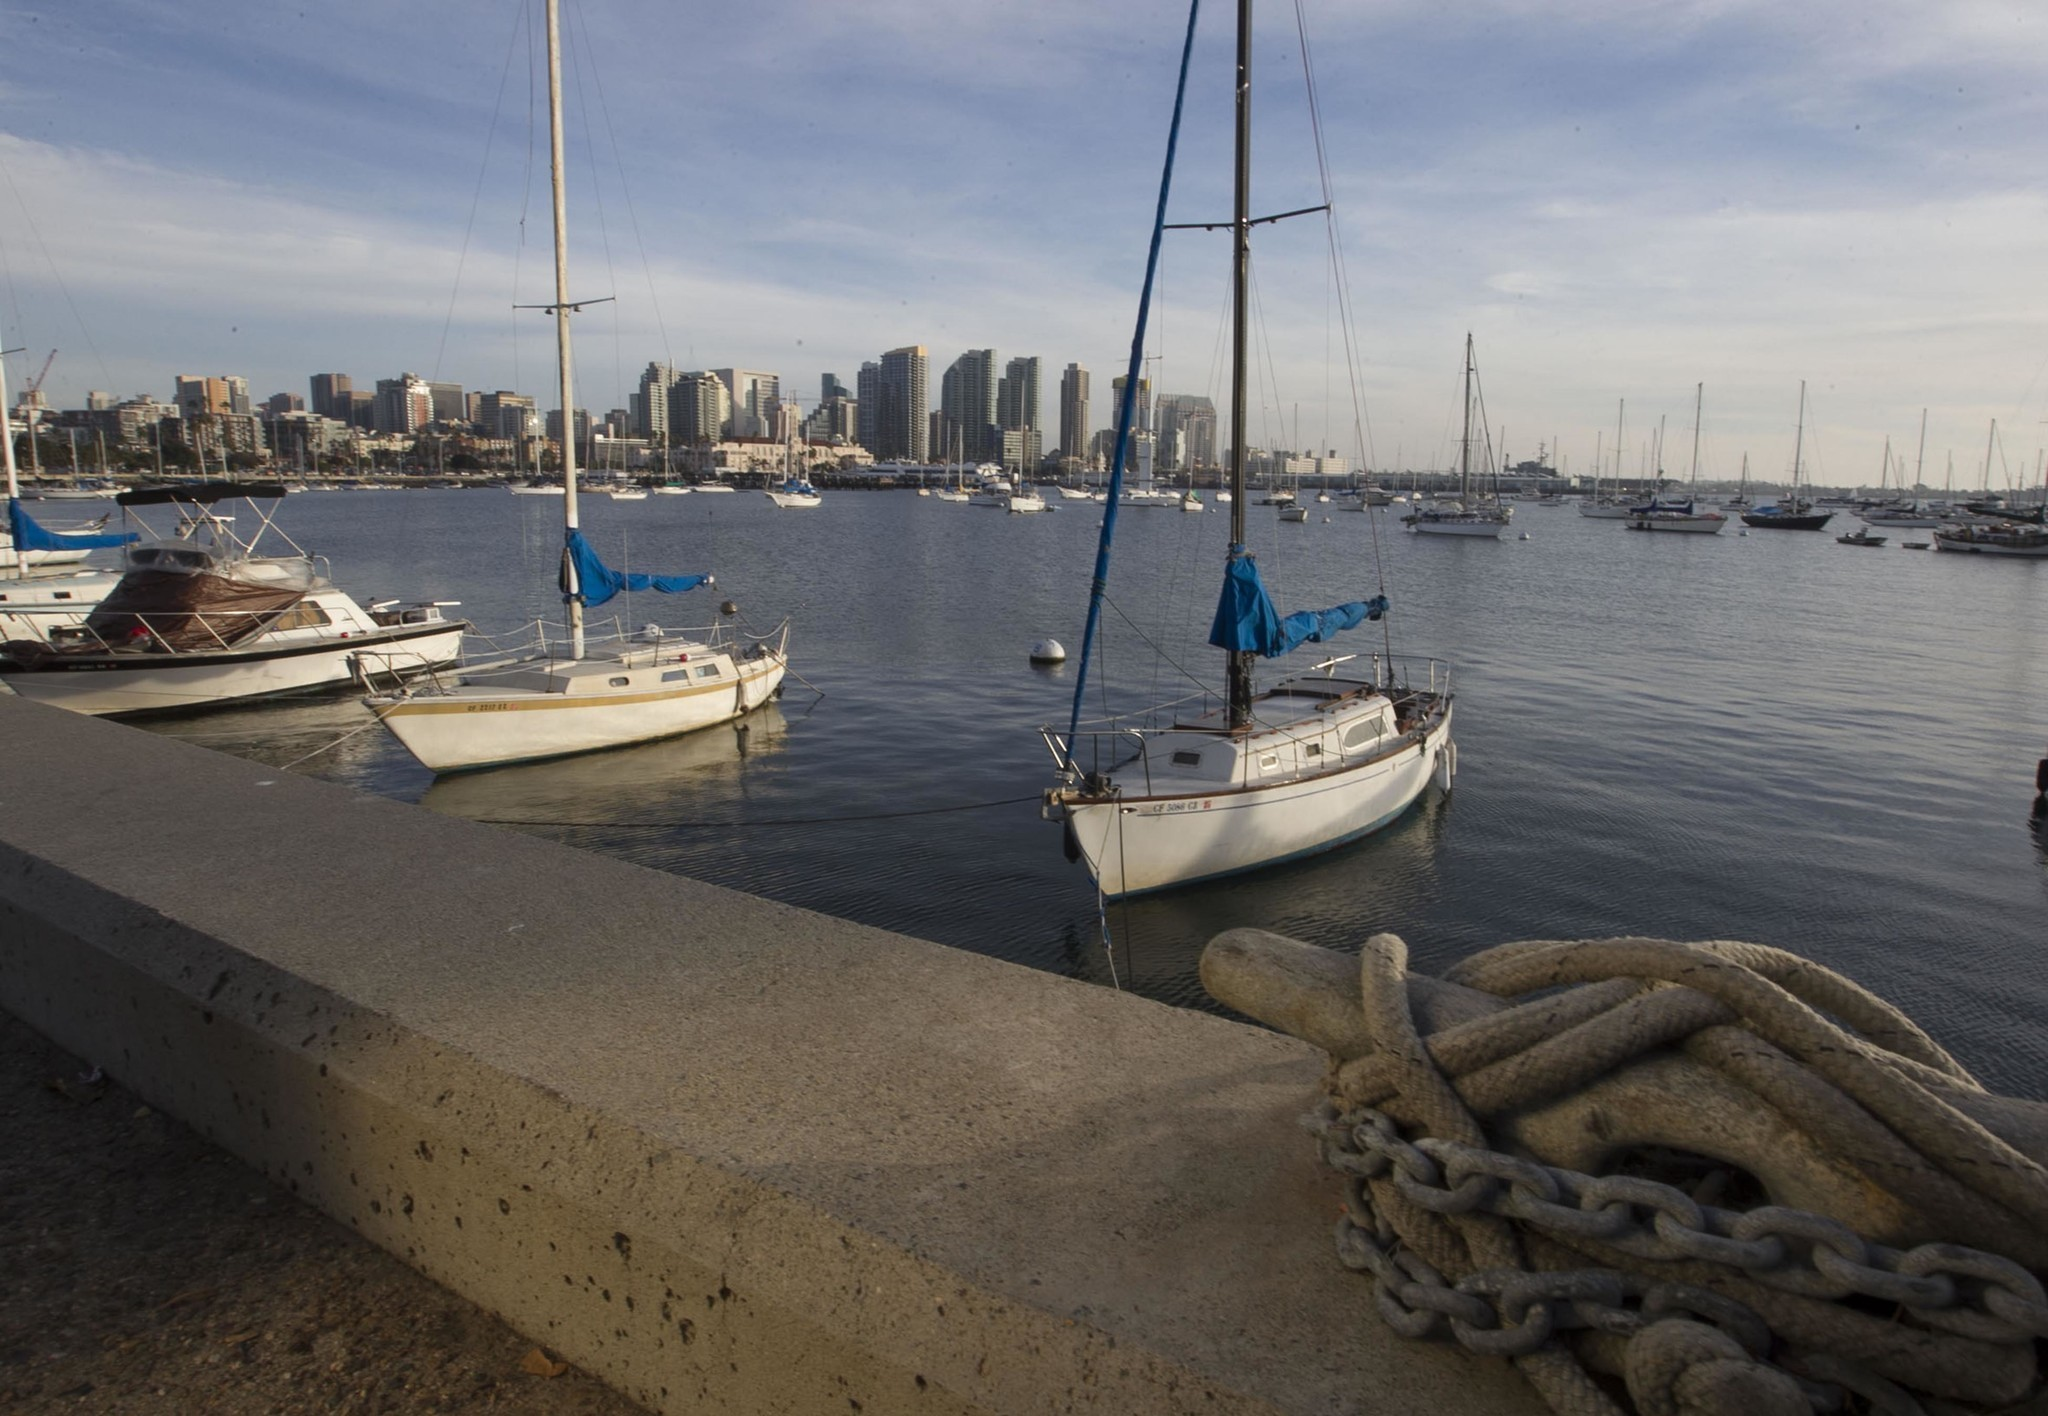 Southern california slip costs - Cruisers & Sailing Forums